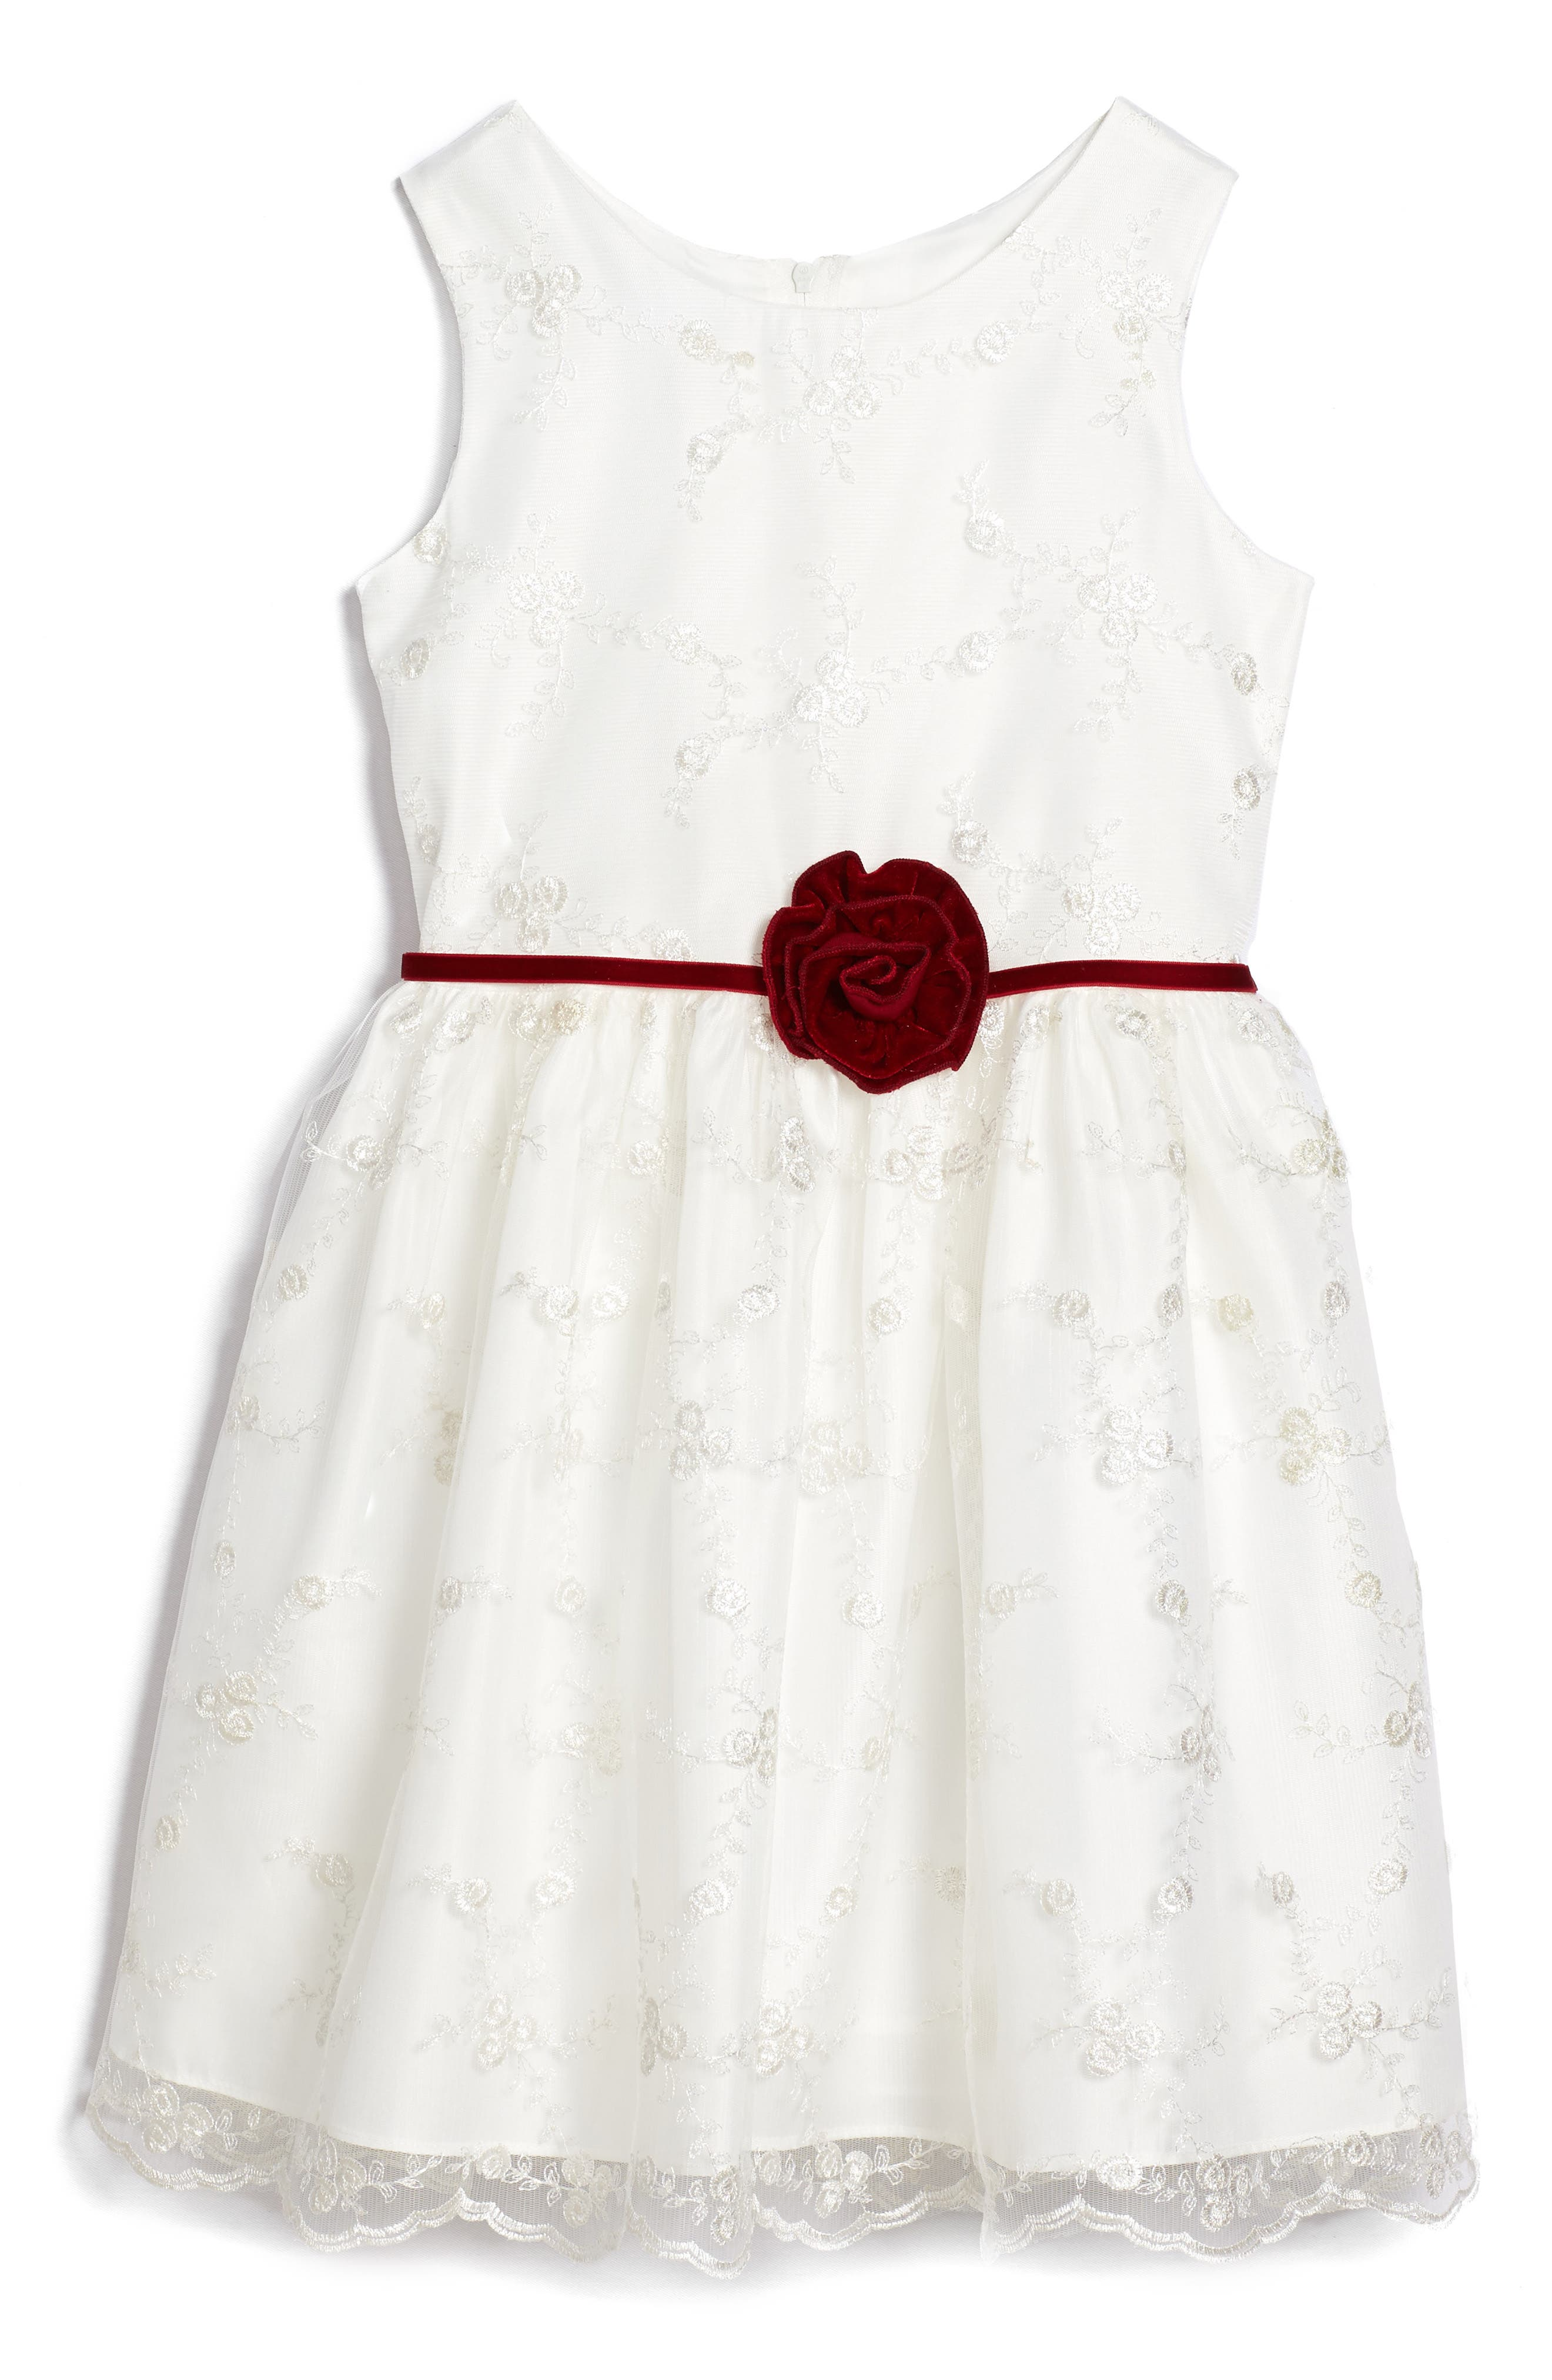 Embroidered Floral Dress,                         Main,                         color, White/ Gold